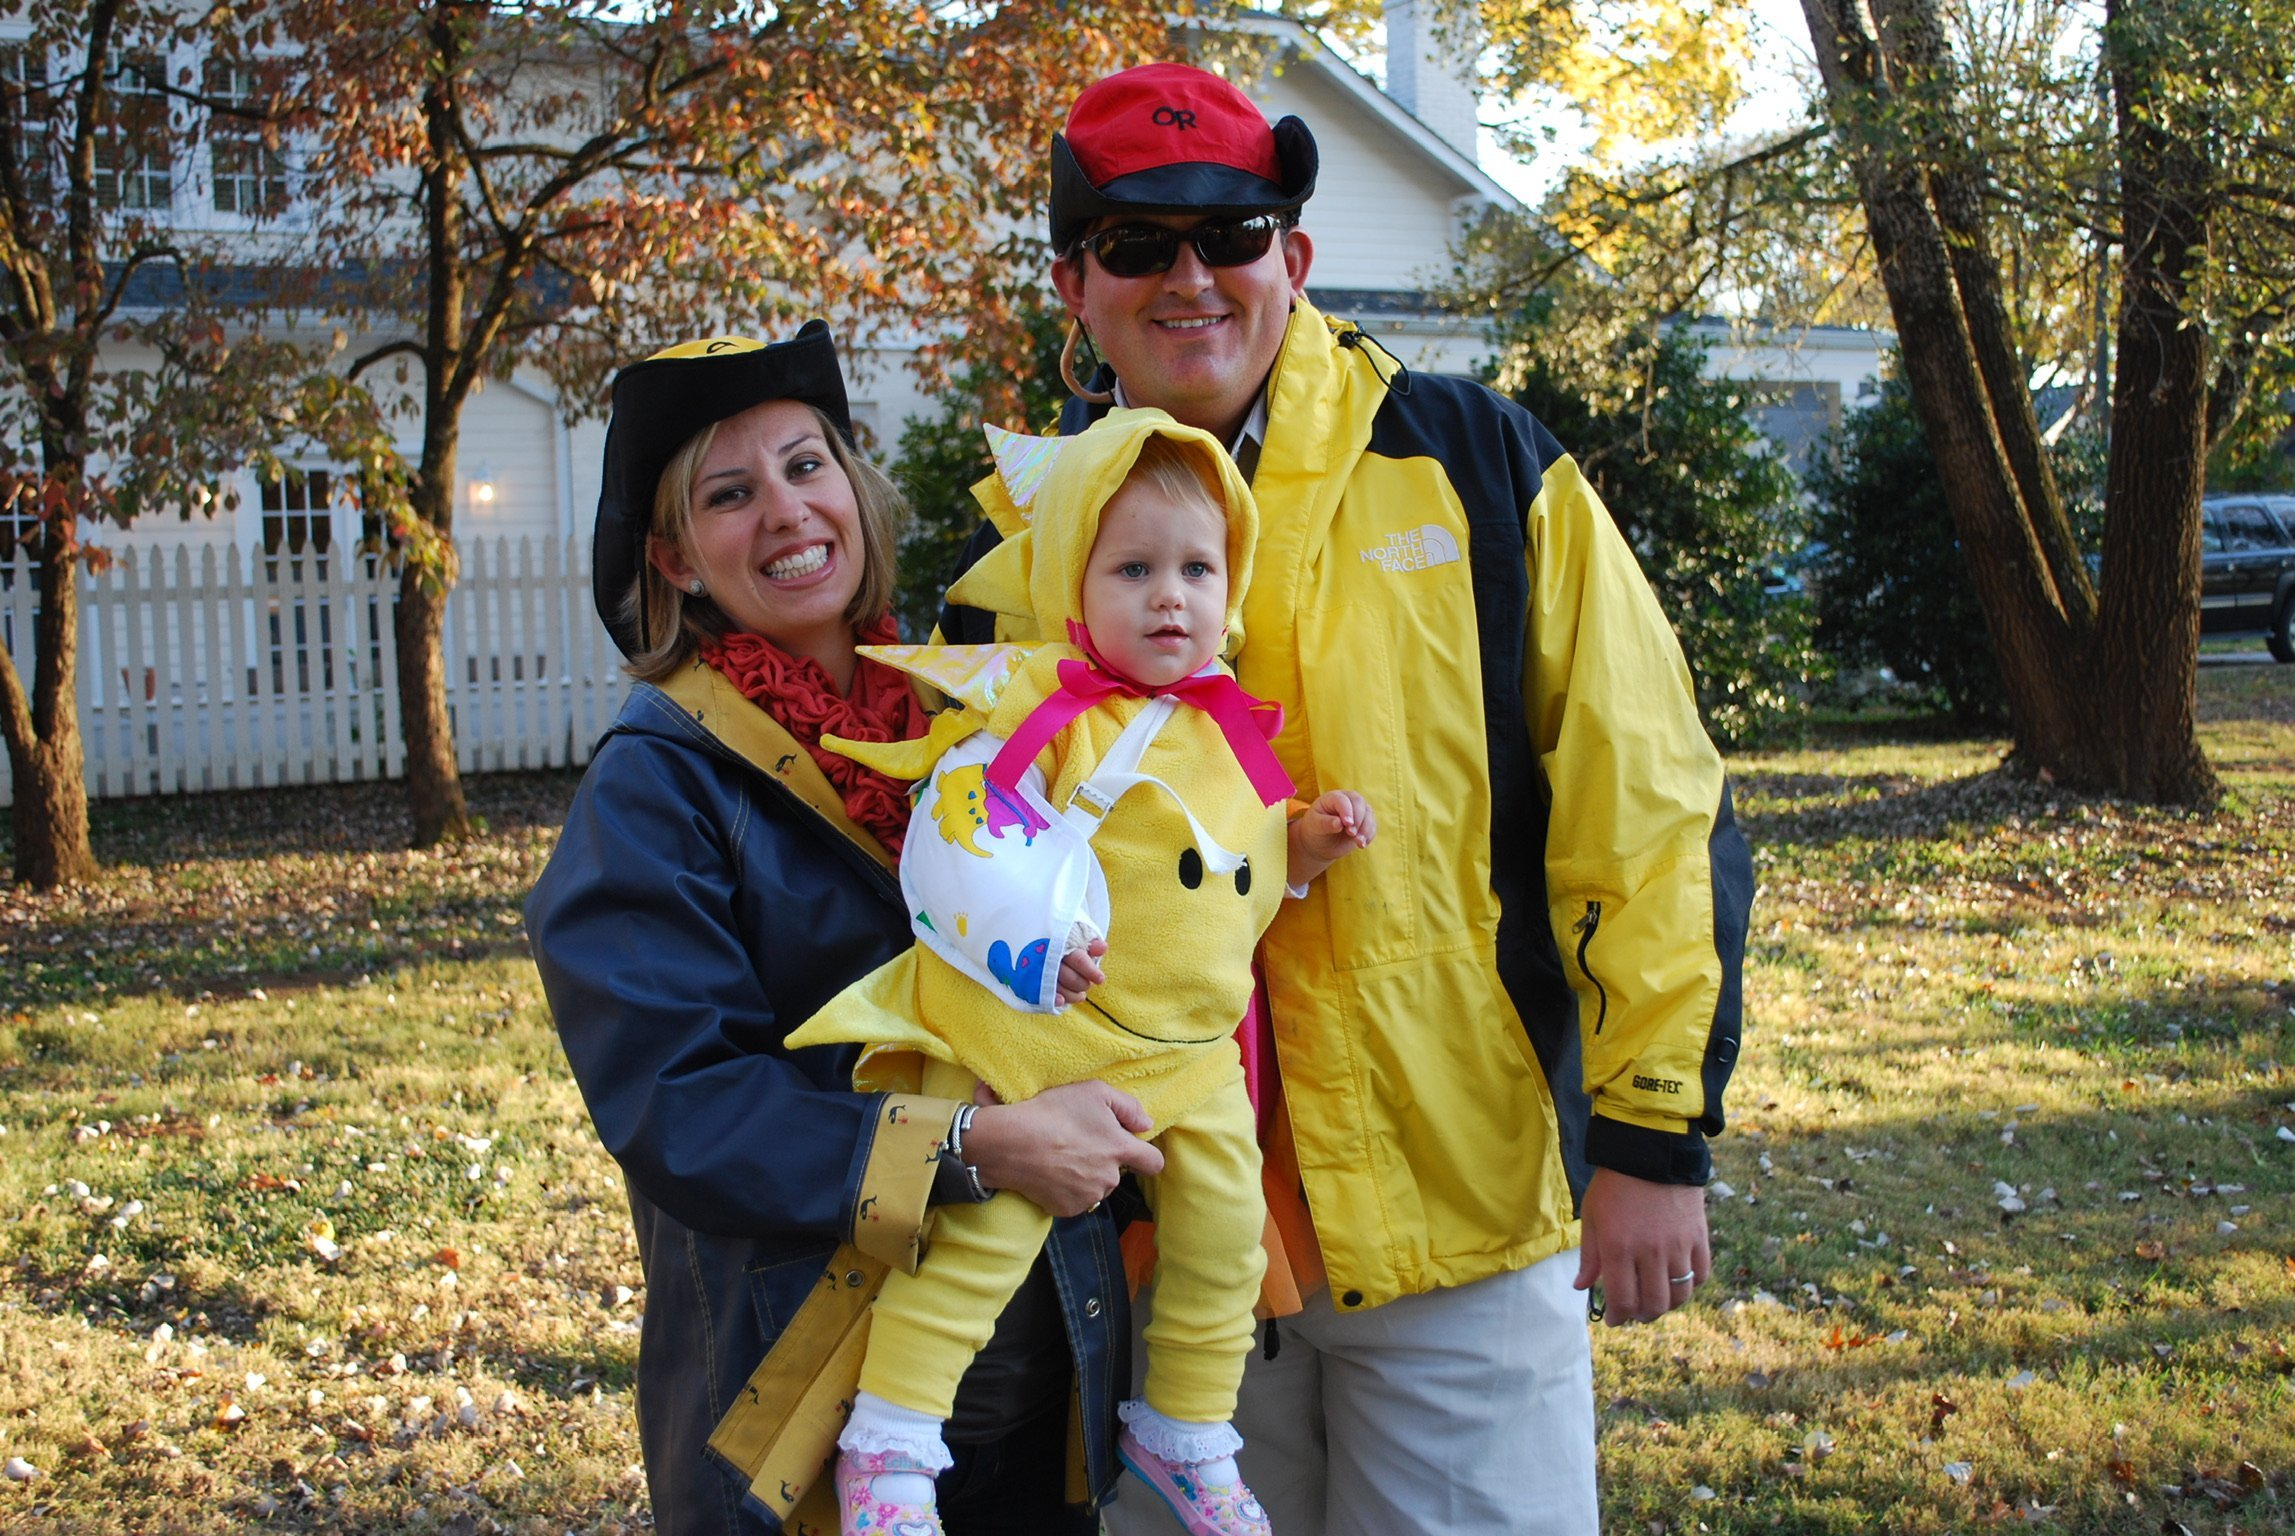 Sunshine on a cloudy day family halloween costume